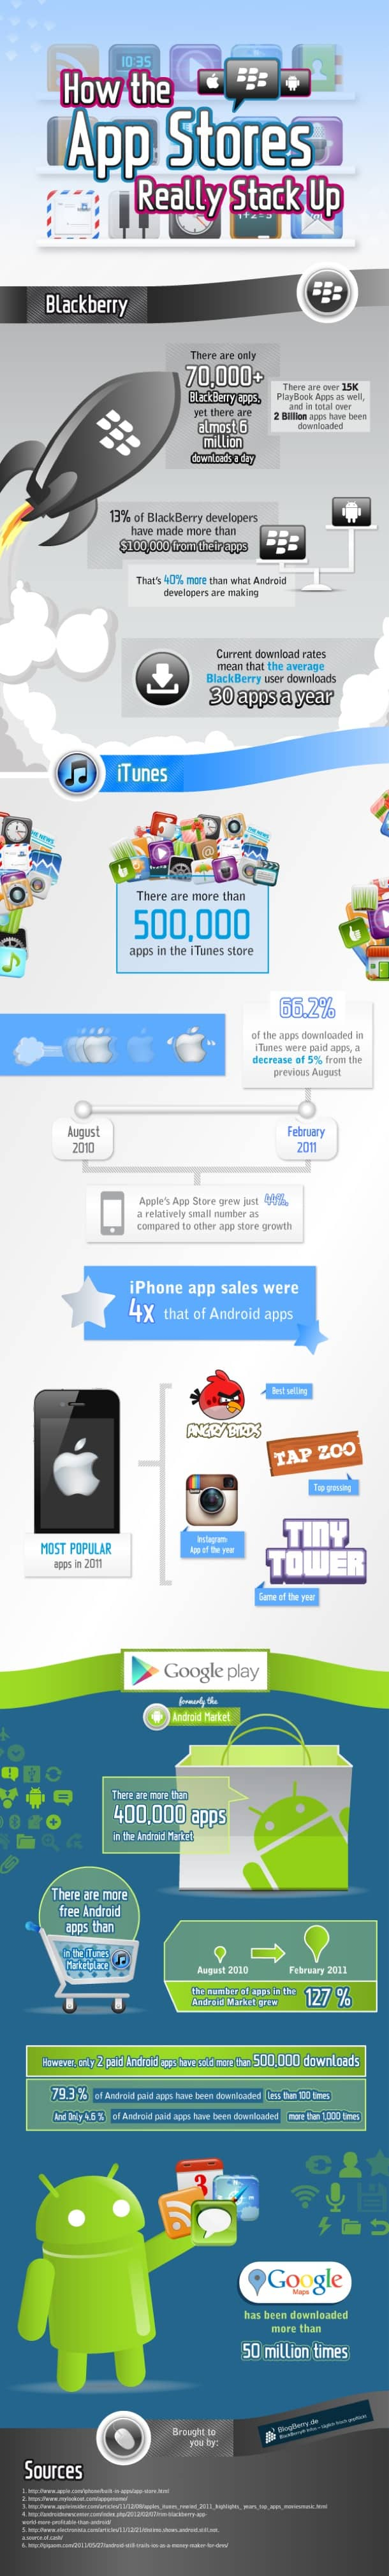 Apple RIM Android App Facts Infographic